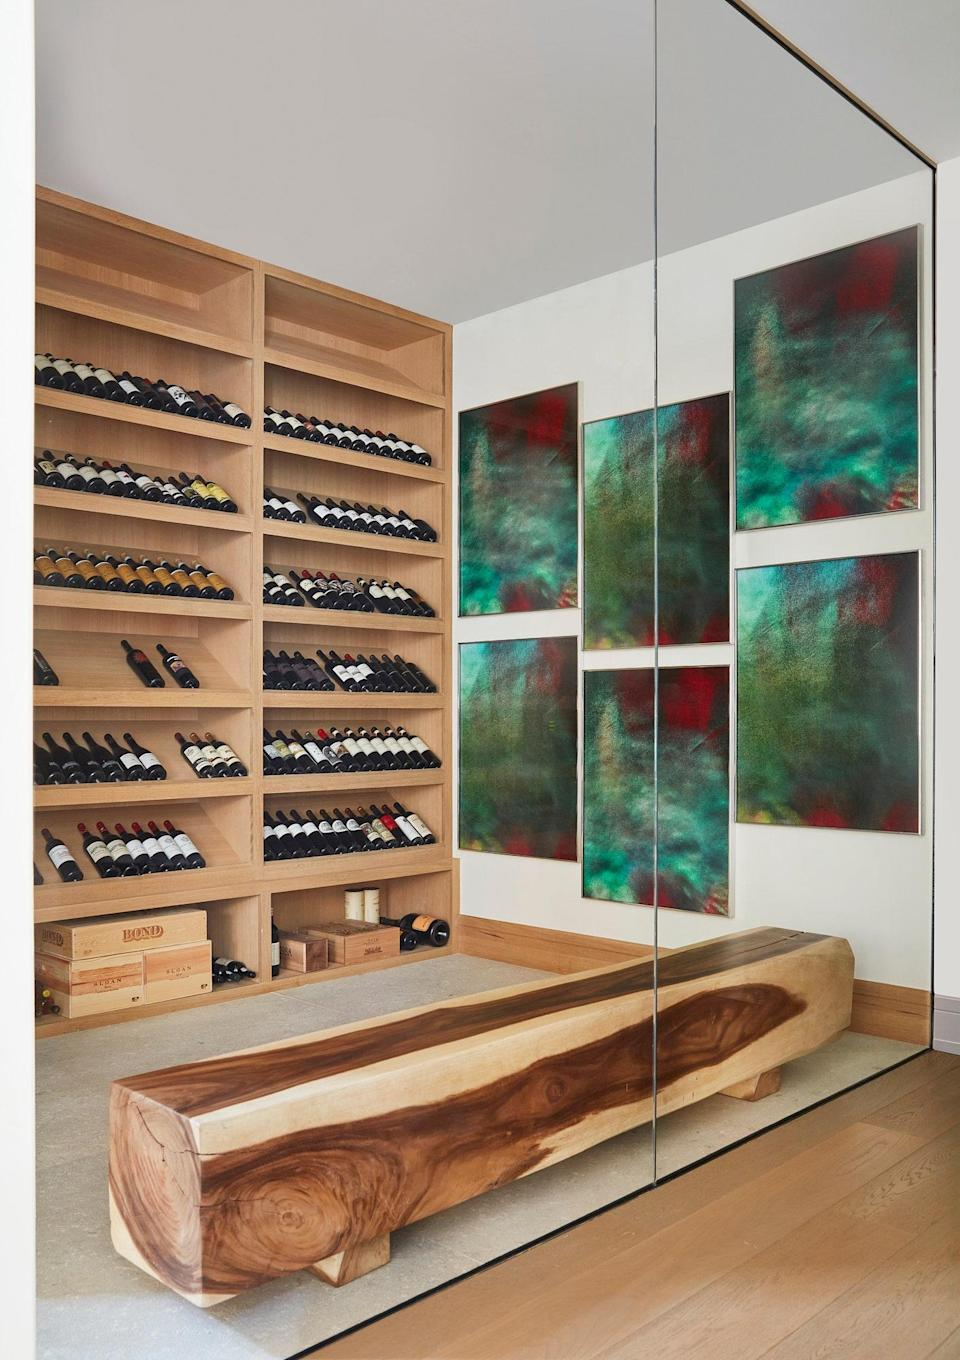 """The wine cellar came with the home, which was designed by Pacific Peninsula Architecture. """"The architect provided us with such great bones to work with,"""" says Legaspi. The artwork on the wall is Double Jicky by Eileen Quinlan, and the wood bench is from Lau's existing collection."""